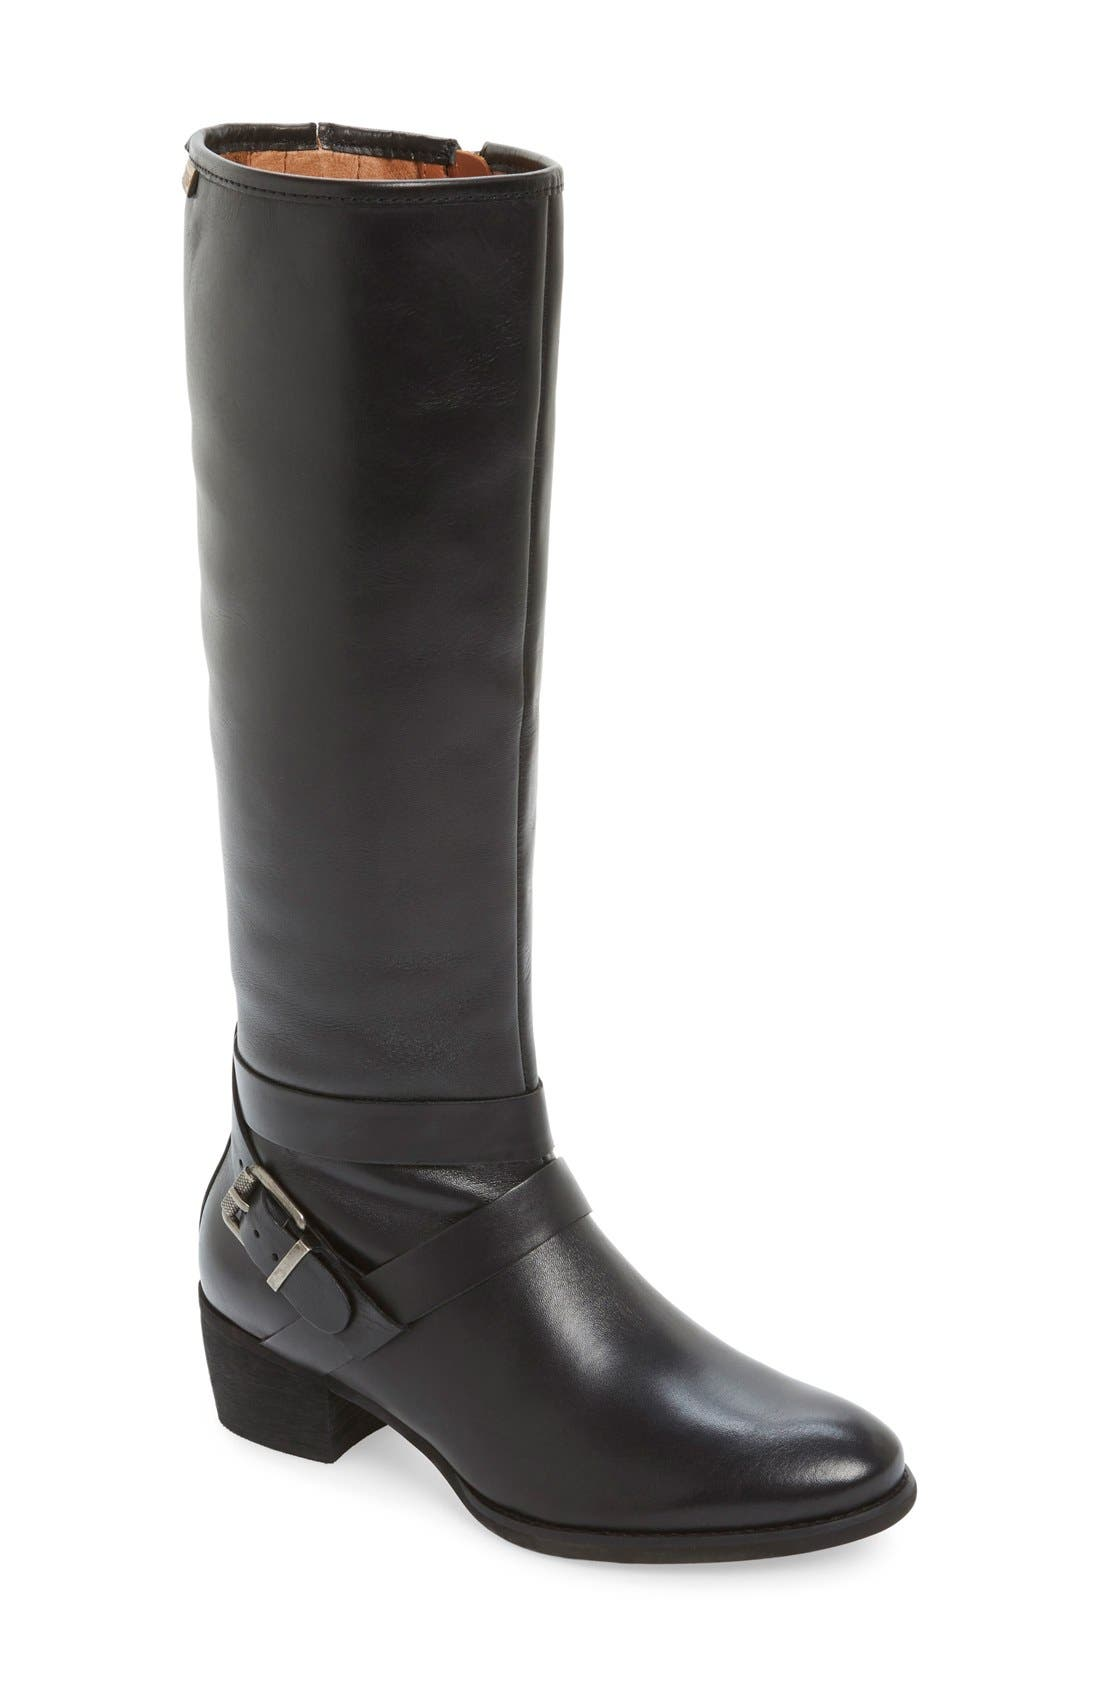 Alternate Image 1 Selected - PIKOLINOS 'Hamilton' Knee High Boot (Women)